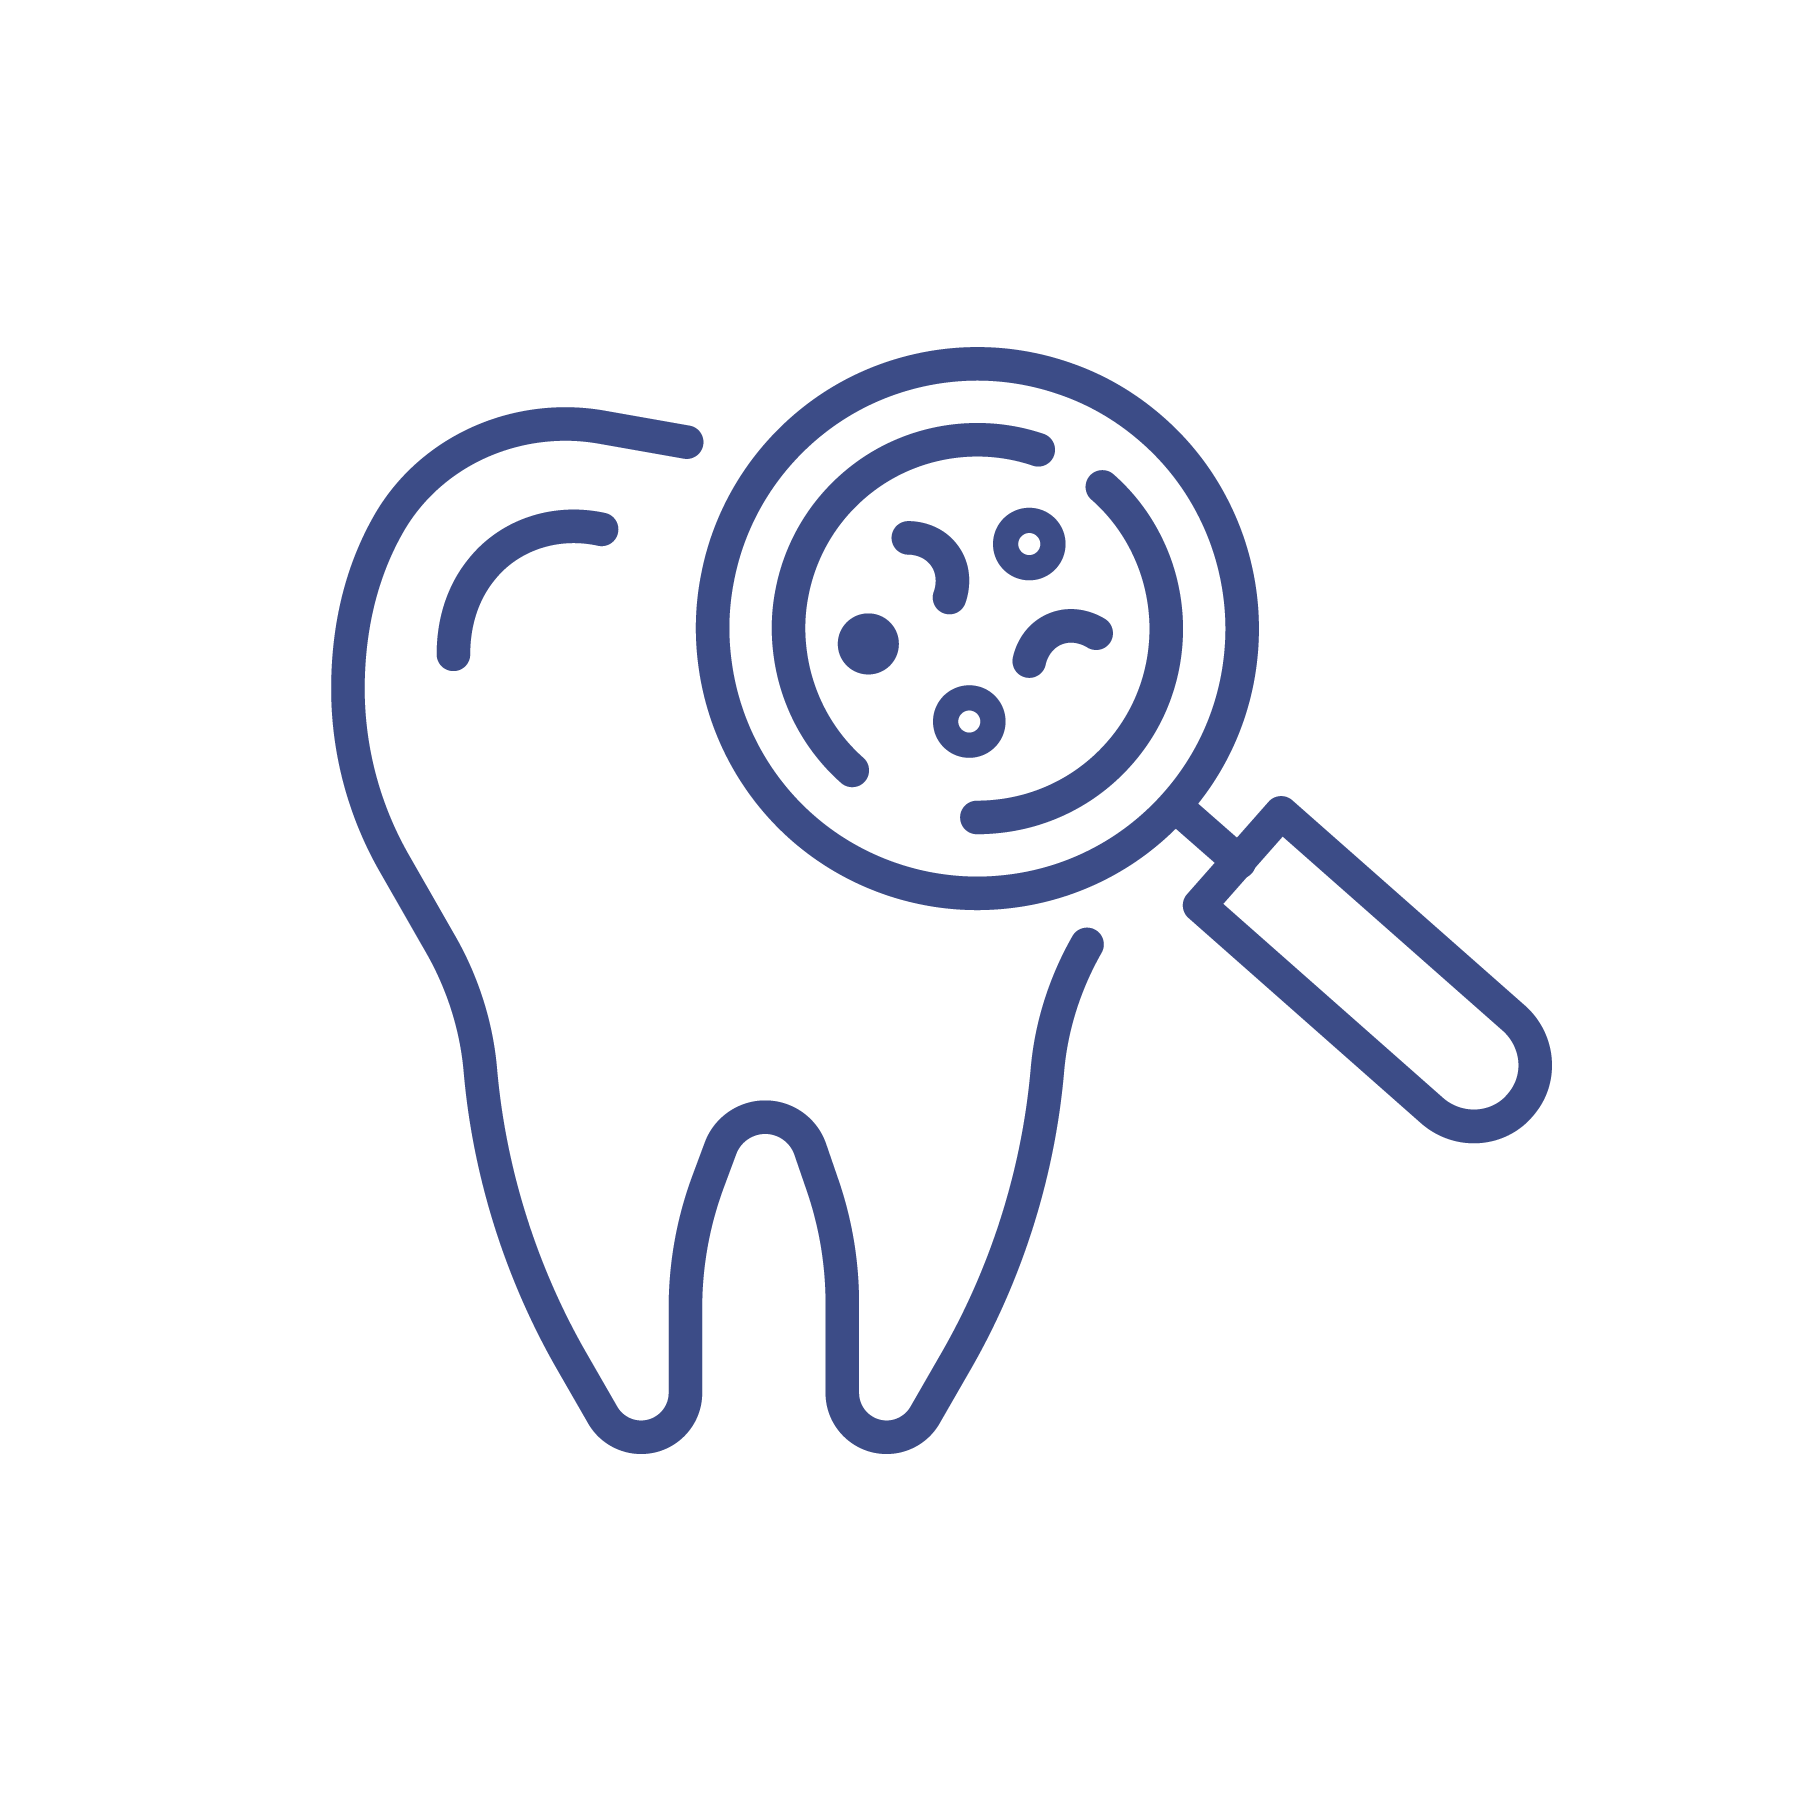 examine teeth icon